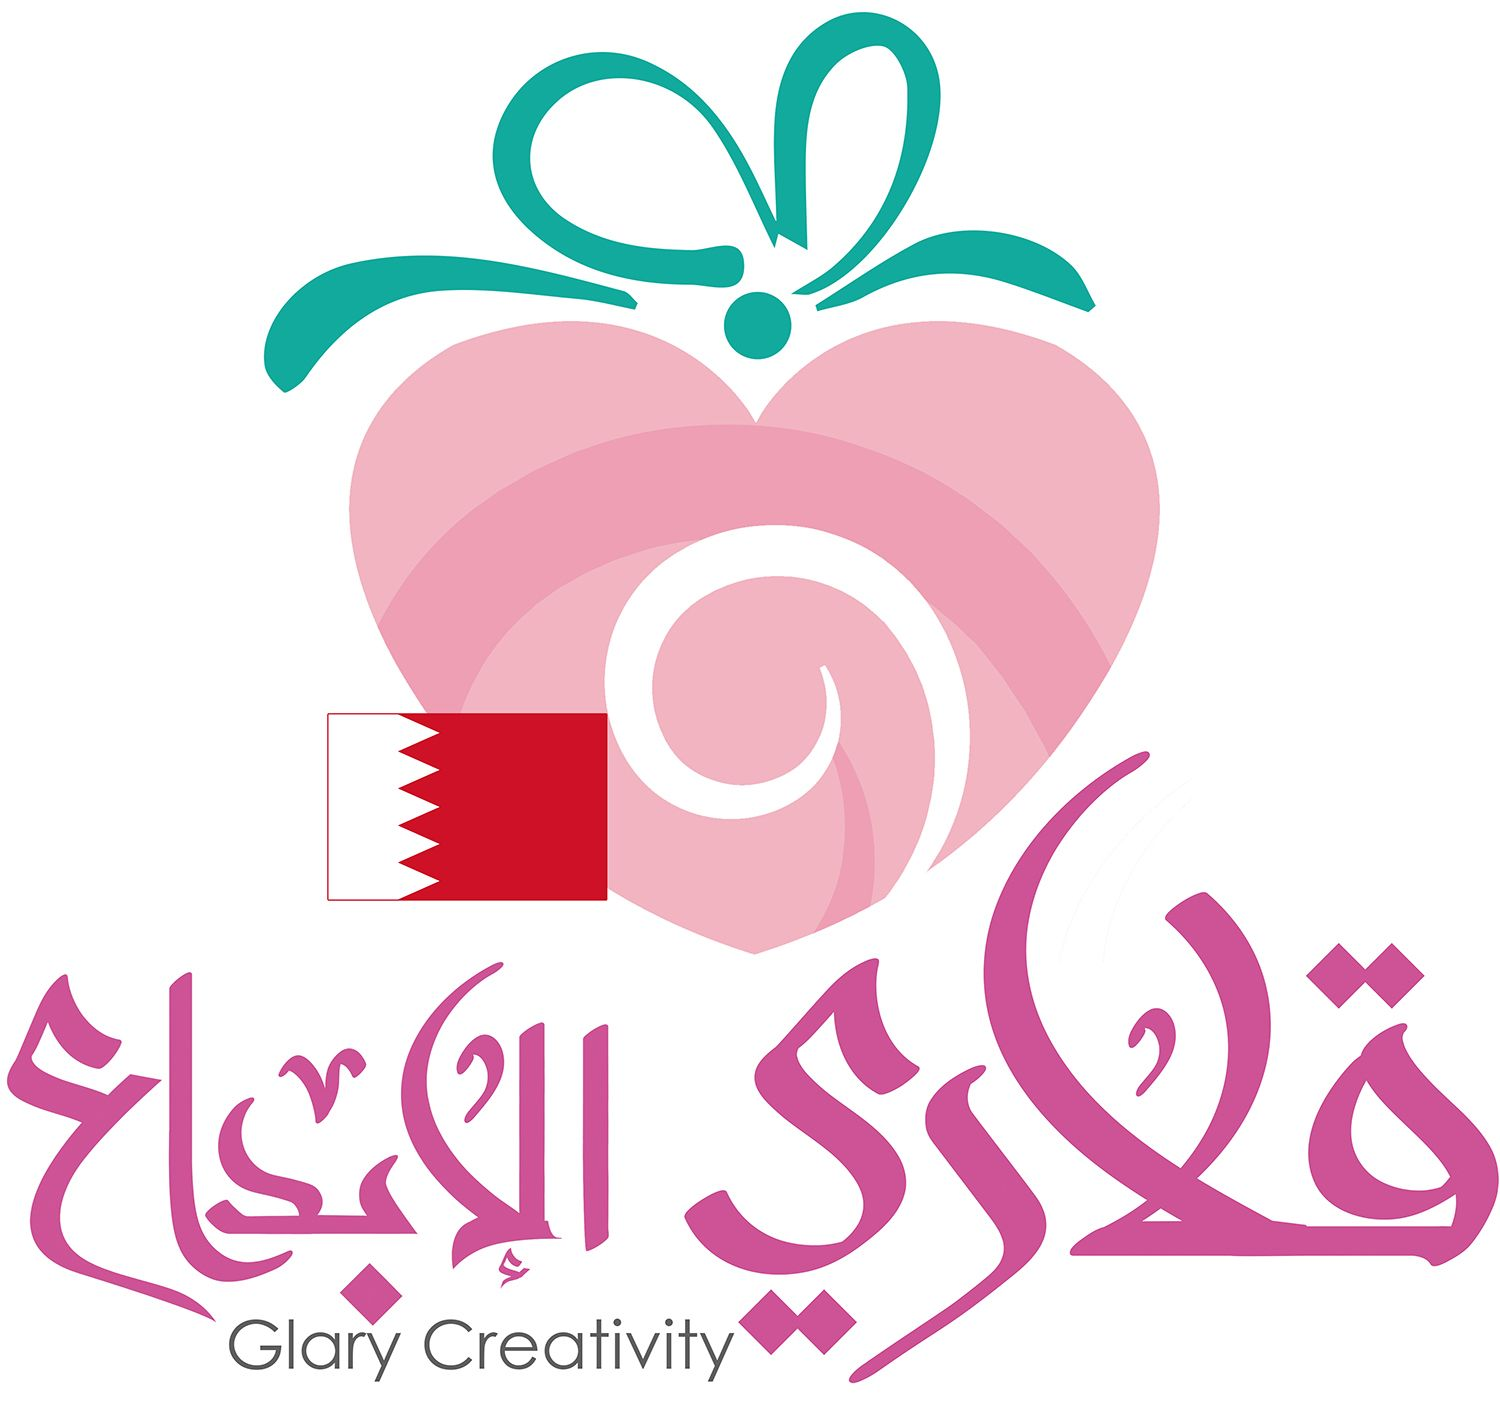 GLARY CREATIVITY